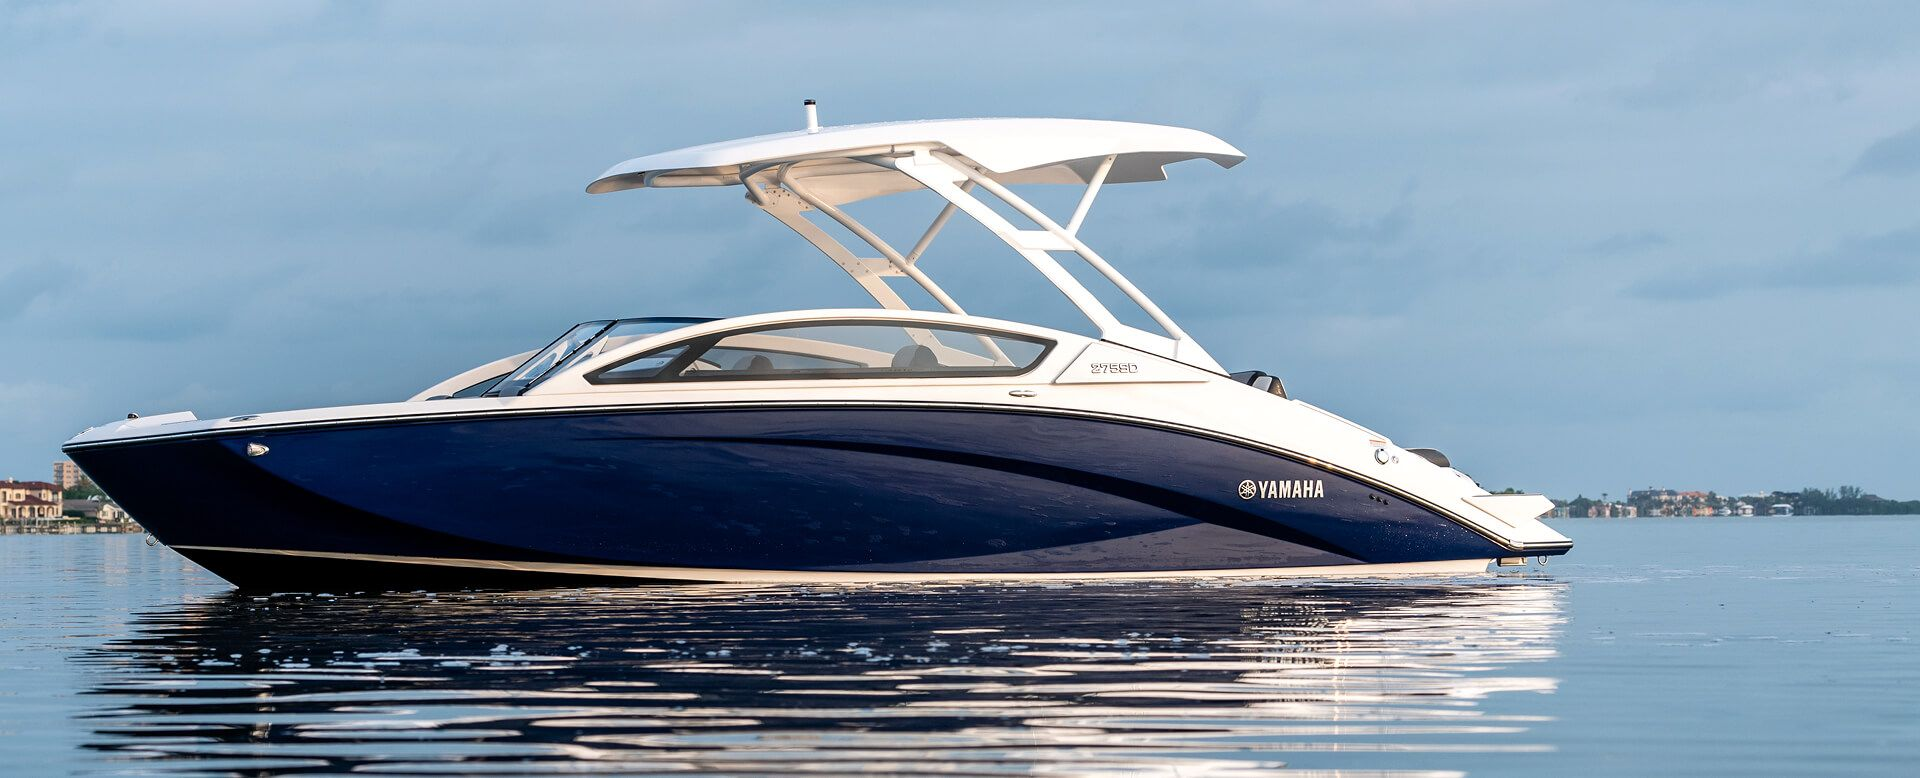 2019 Yamaha 27 Foot Jet Propulsion Boat Model 275sd Powered By Twin 1 8 Liter Super Vortex High Output Engines Seating Ca Jet Boats Yamaha Boats Model Boats